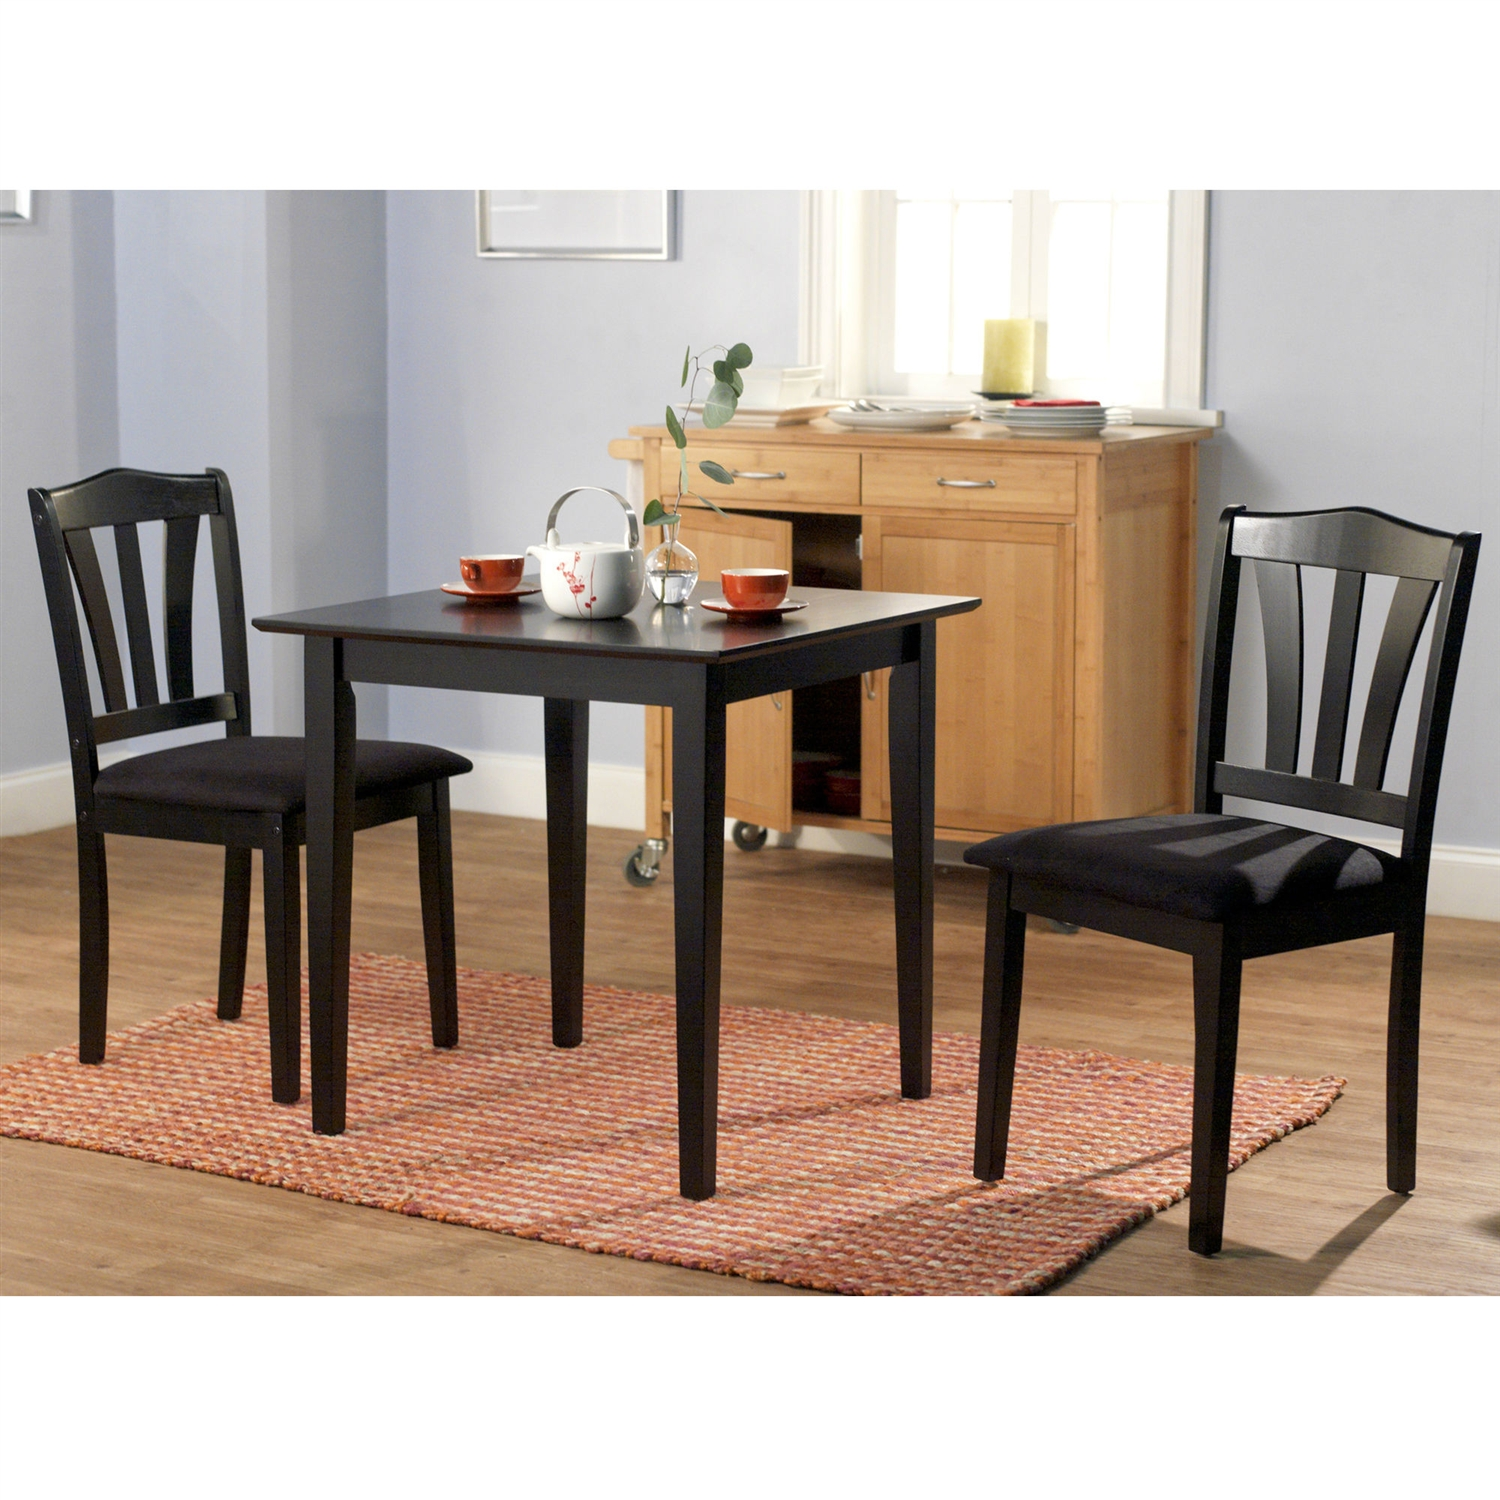 Table And Chair Dining Sets: 3-Piece Wood Dining Set With Square Table And 2 Chairs In